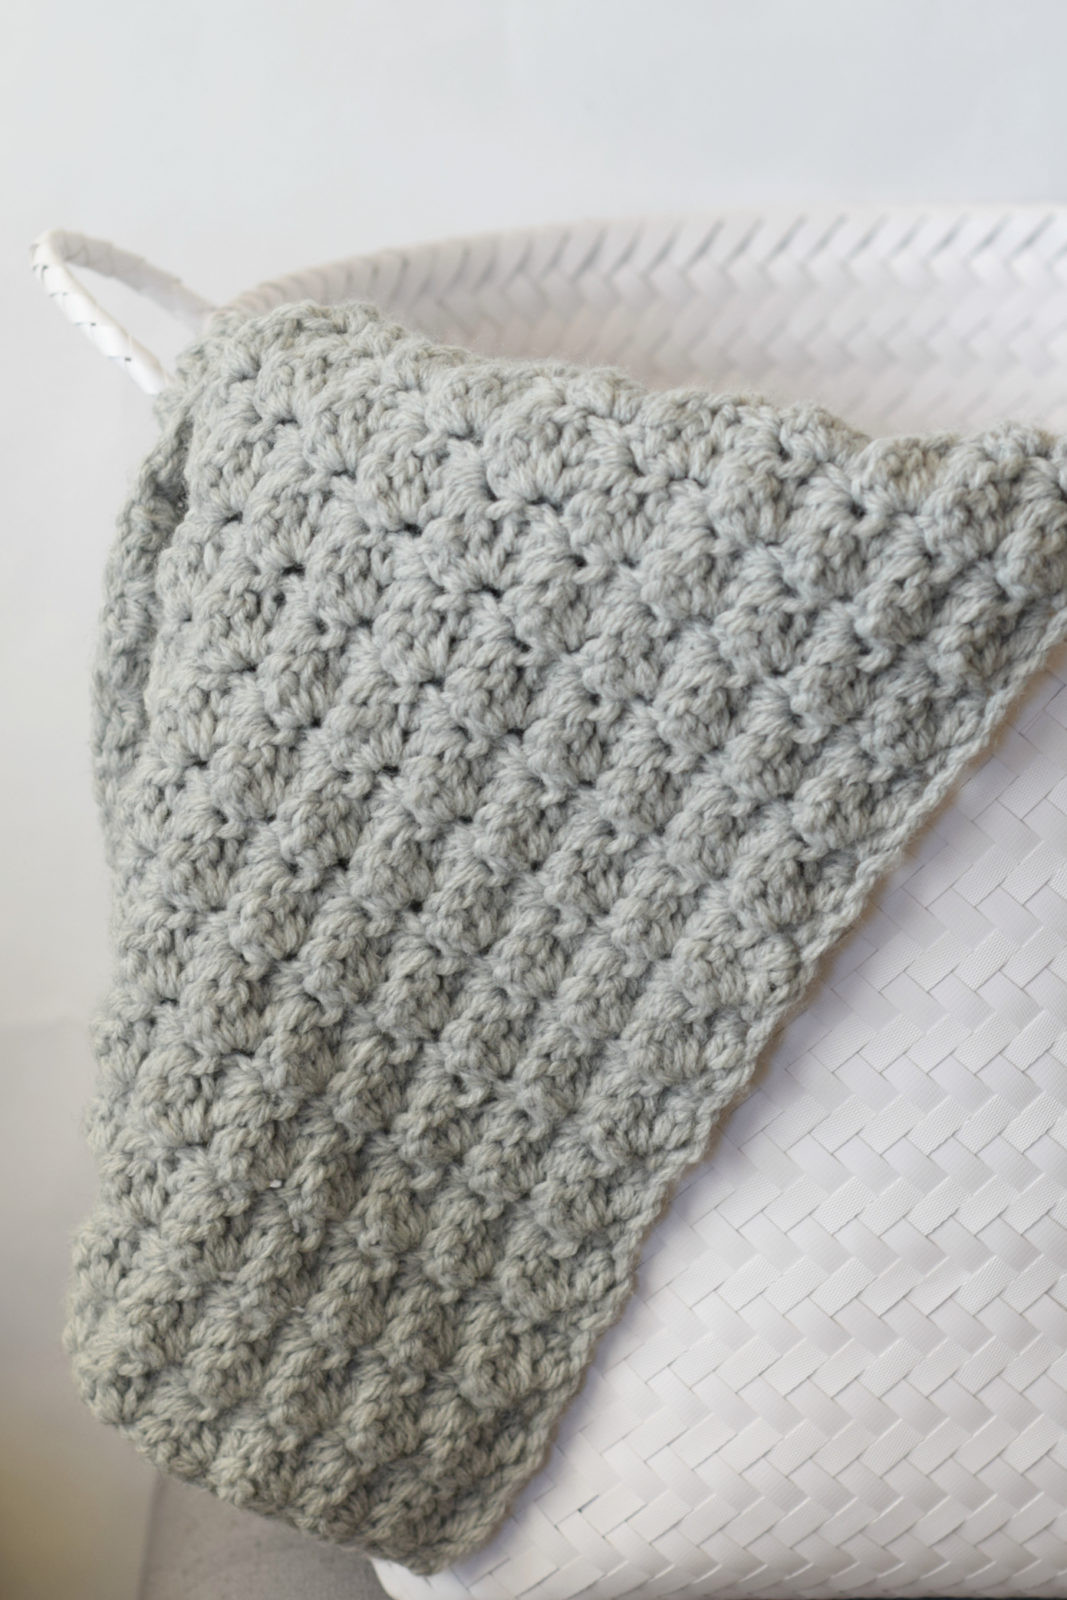 Crochet Stitches for Baby Blankets Inspirational Simple Crocheted Blanket Go to Pattern – Mama In A Stitch Of Amazing 45 Pics Crochet Stitches for Baby Blankets